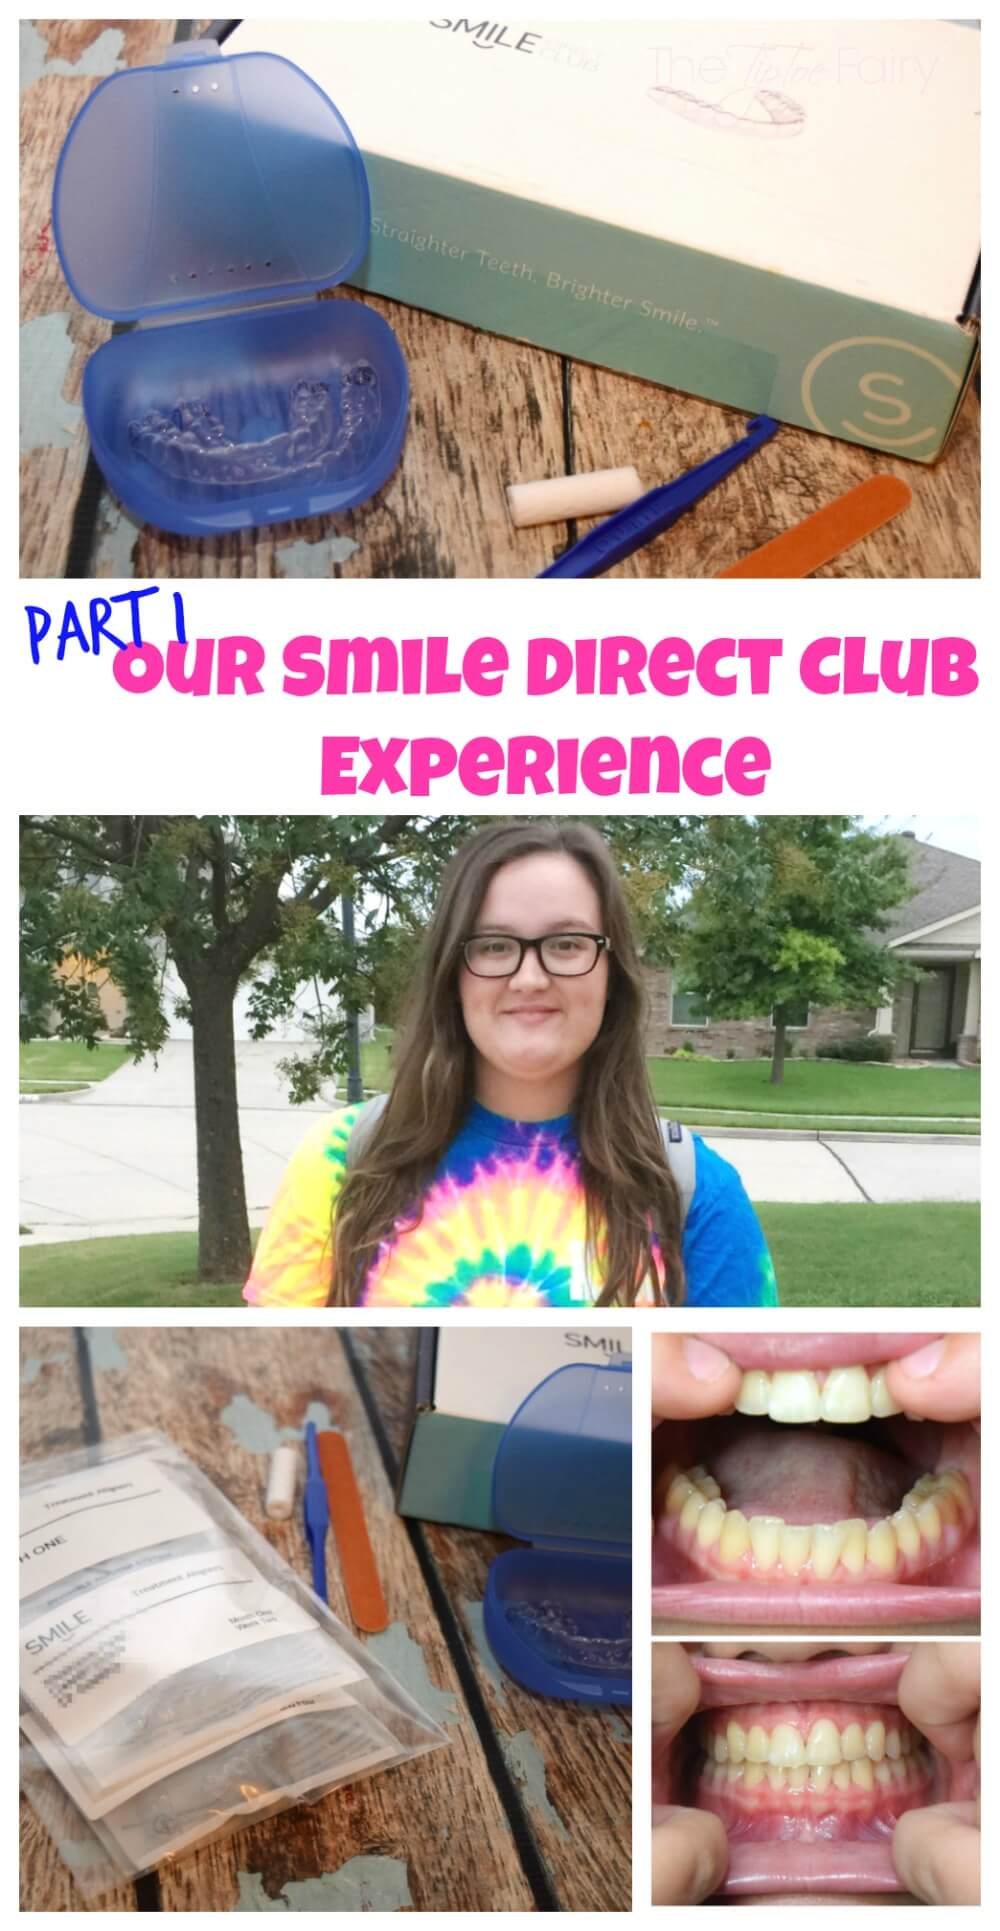 Follow our journey w/ SmileDirectClub & get an exclusive discount code! #WhatMakesMeSmile #ad